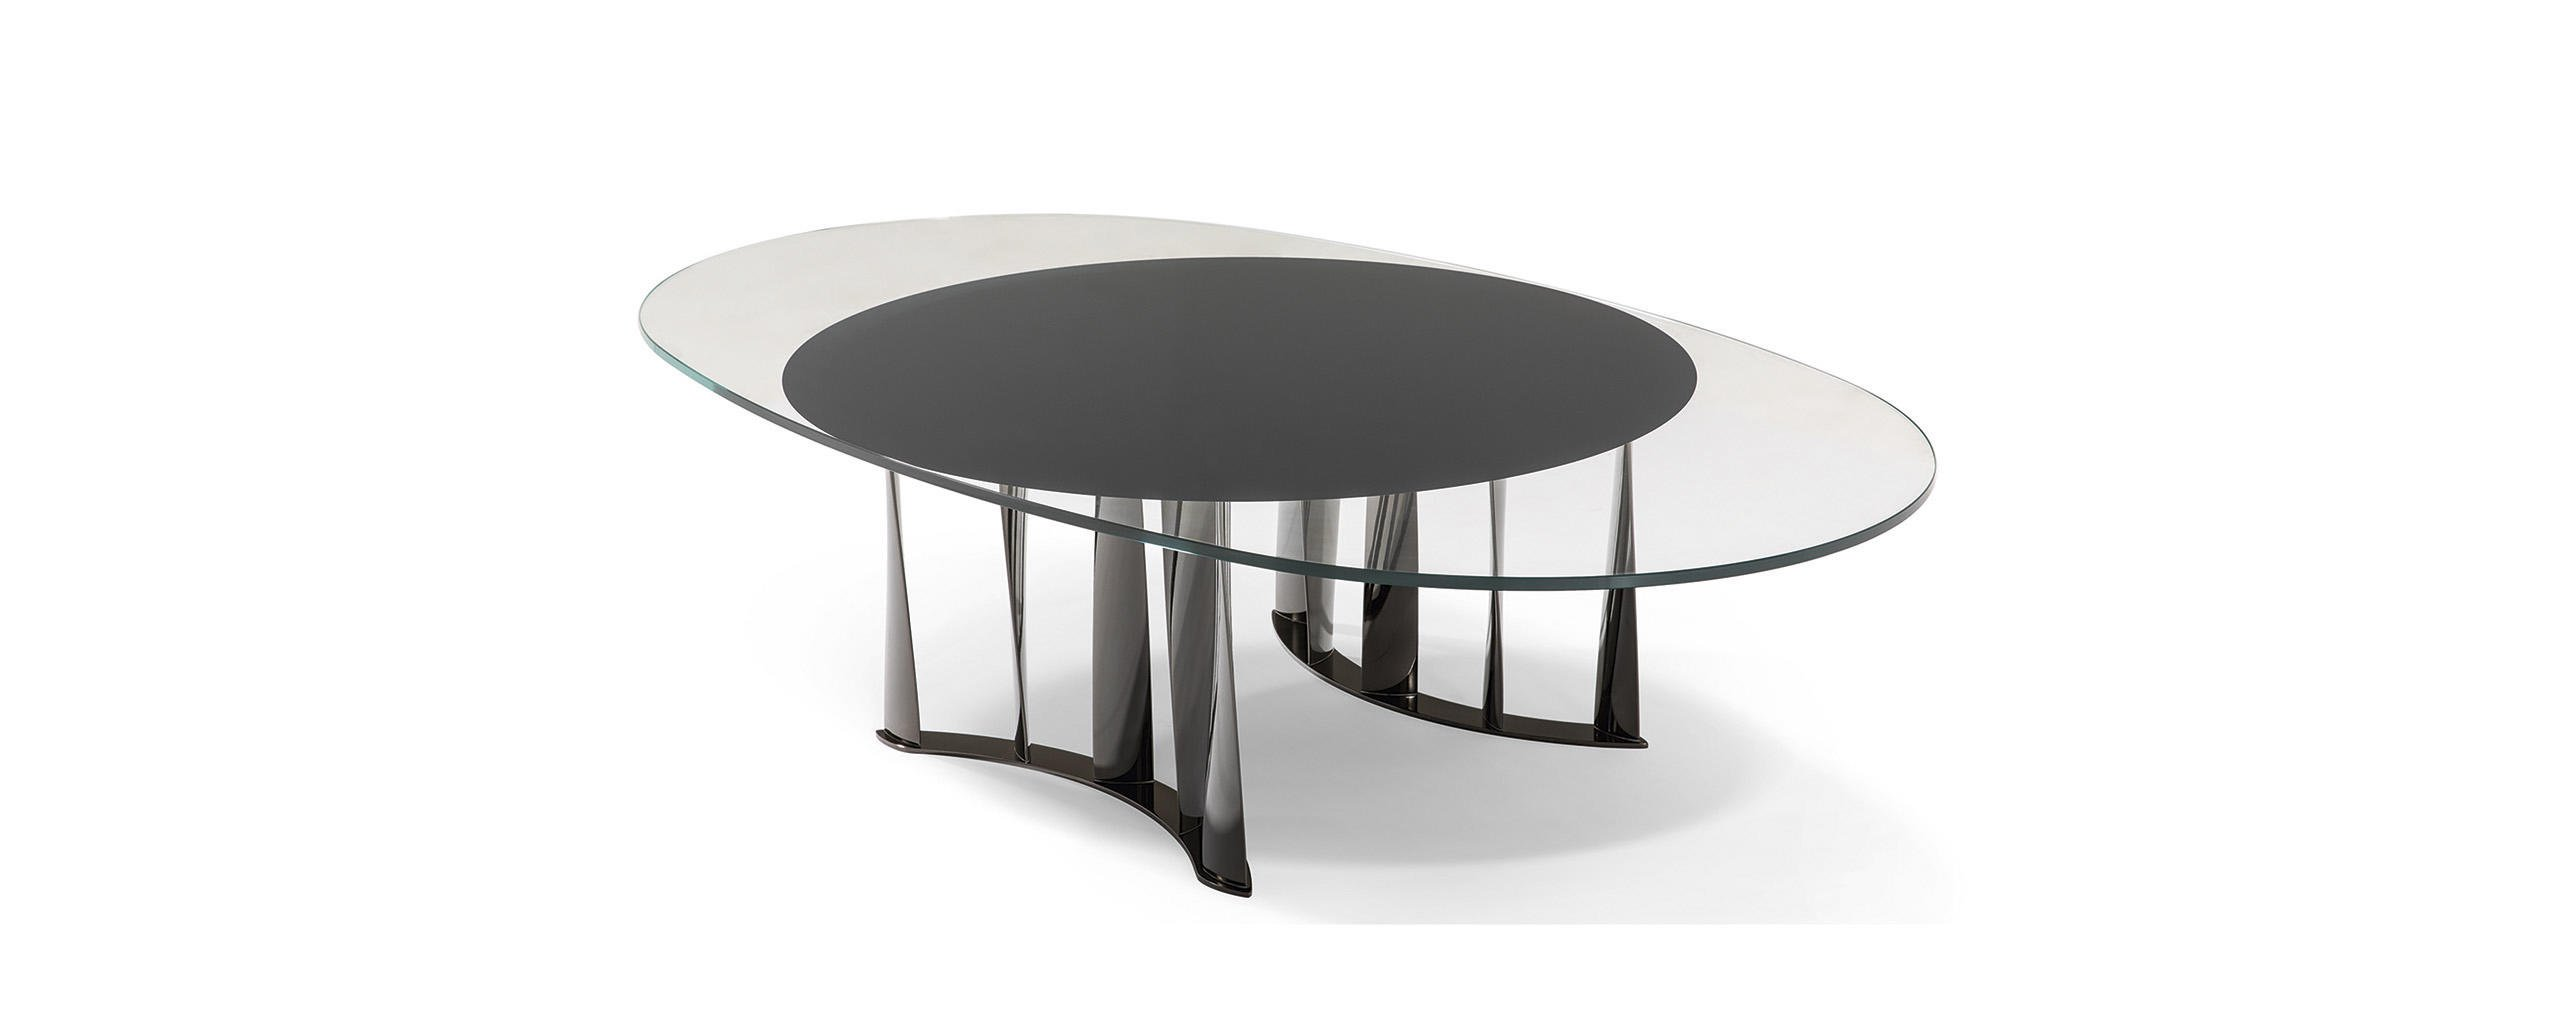 6_cassina_boboli_centre_table_rodolfo_dordoni